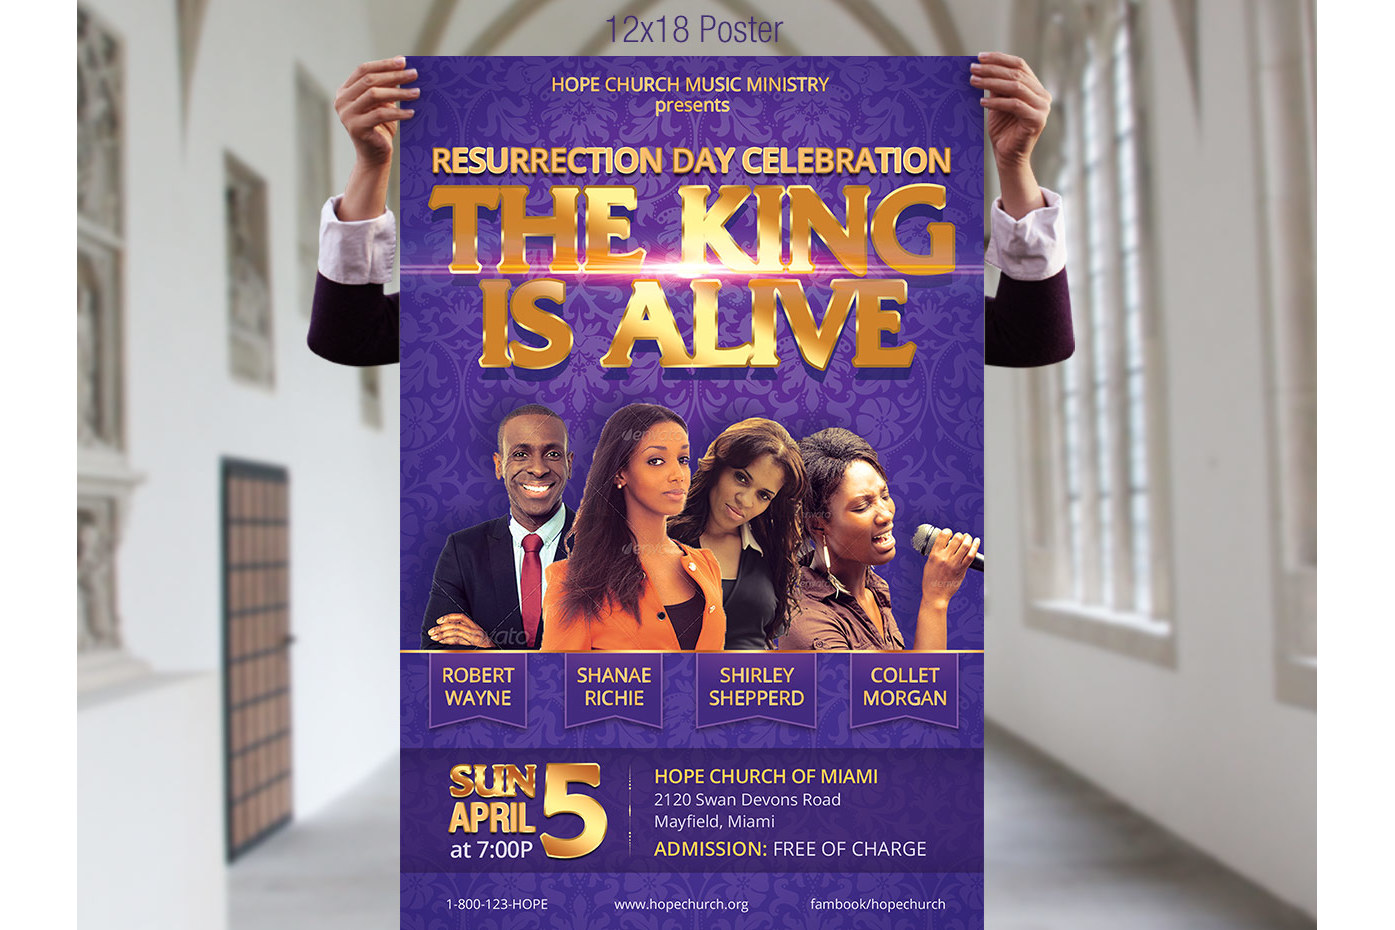 Resurrection Day Concert Flyer Poster Template example image 5